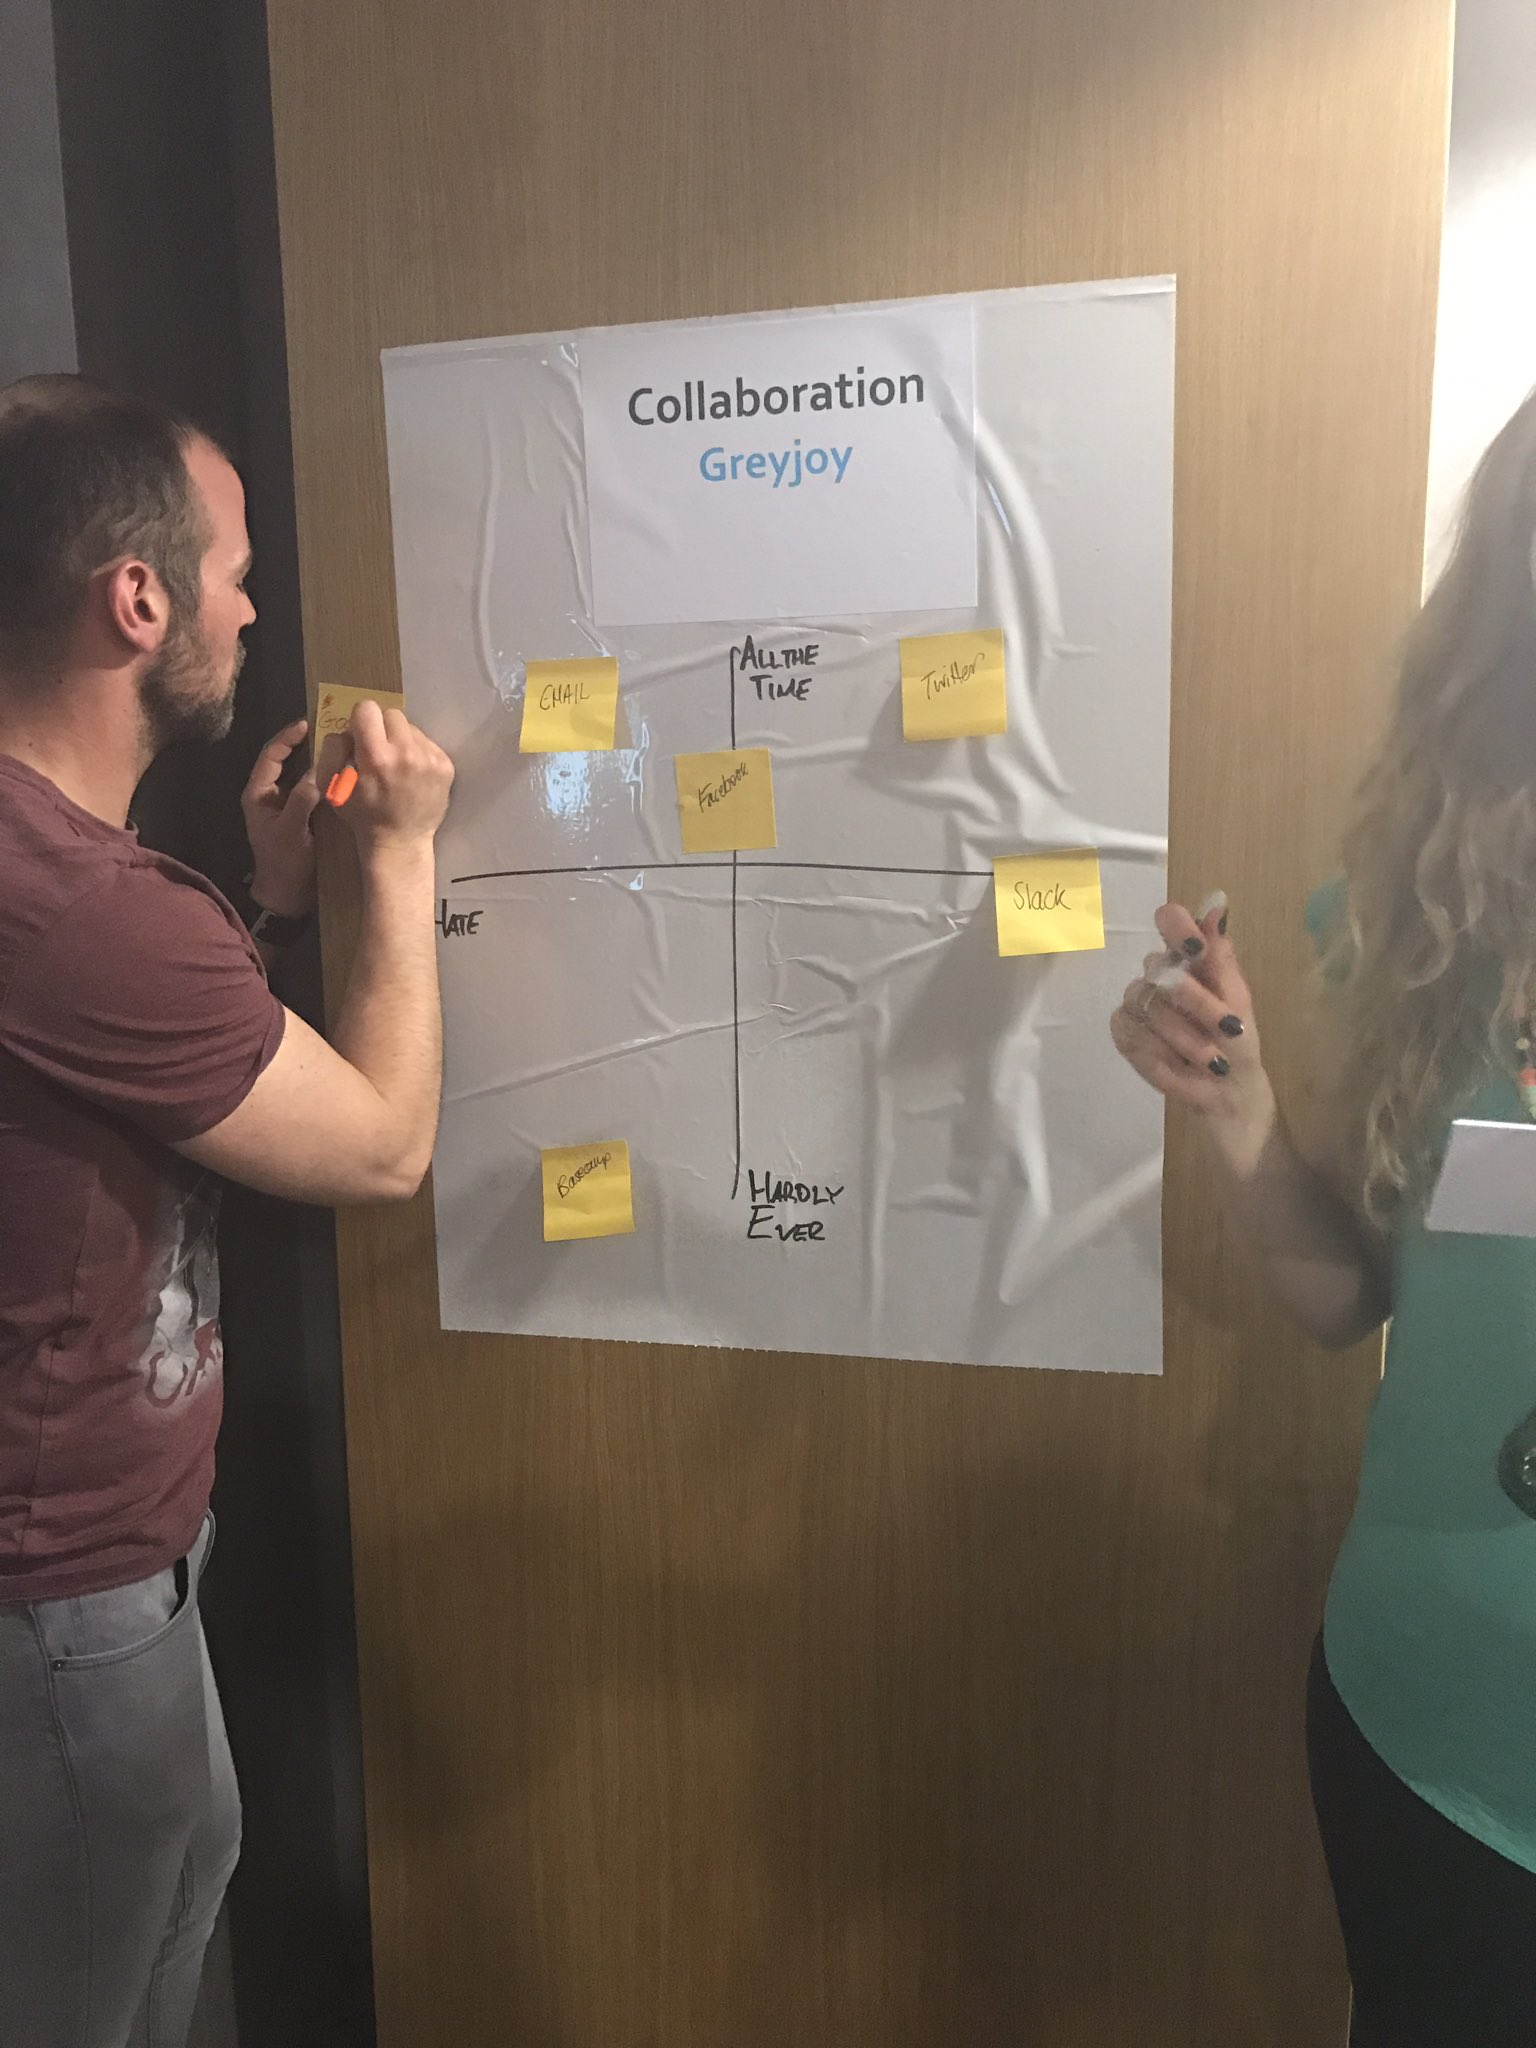 Great networking game at #CharityMeetup - which tools do you love for collaboration? #sm4np https://t.co/gSJar2M2mU